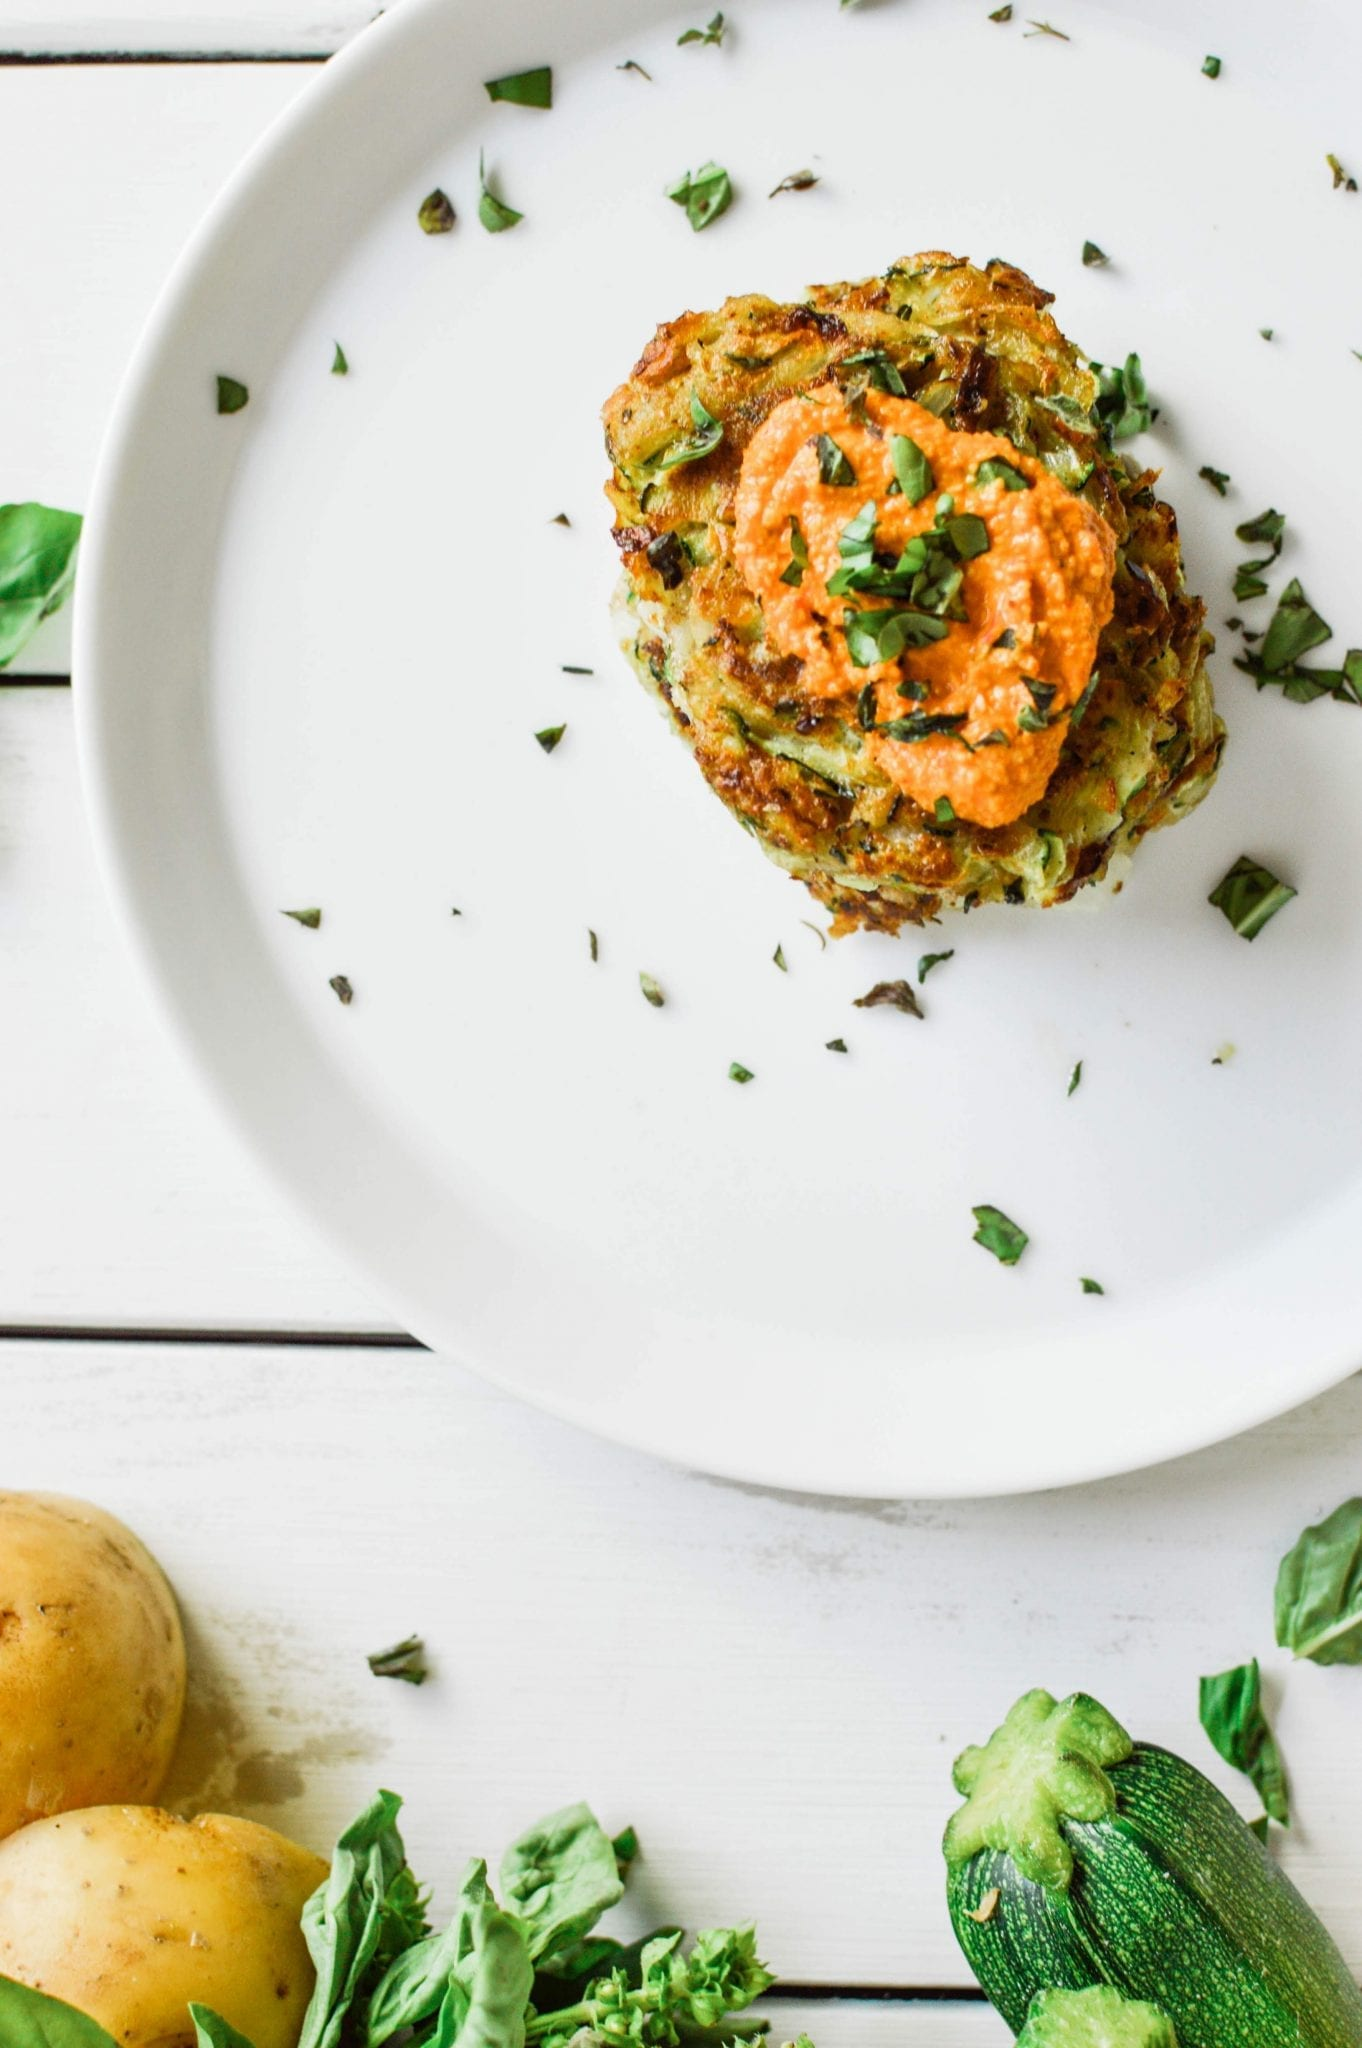 25-minute Healthy Zucchini Potato Fritters | Vegan | Gluten-Free | Soy-Free